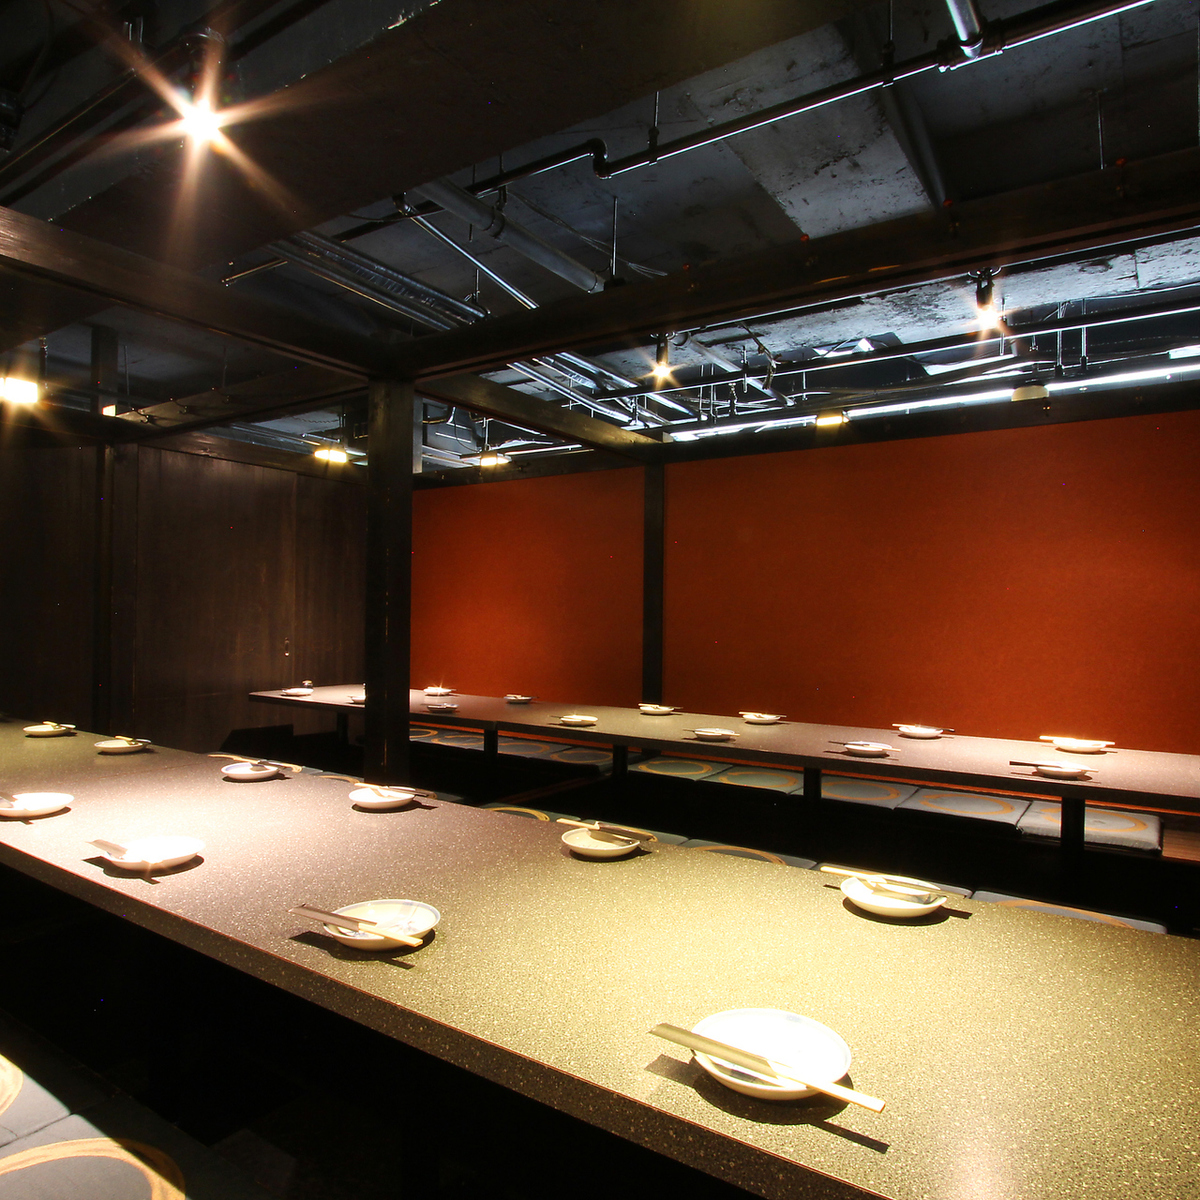 Also to launch, drinking party, reunion.If you are looking for an izakaya with a full drink canned course around Kanda, please use the private room Izakaya Kokusai store ★